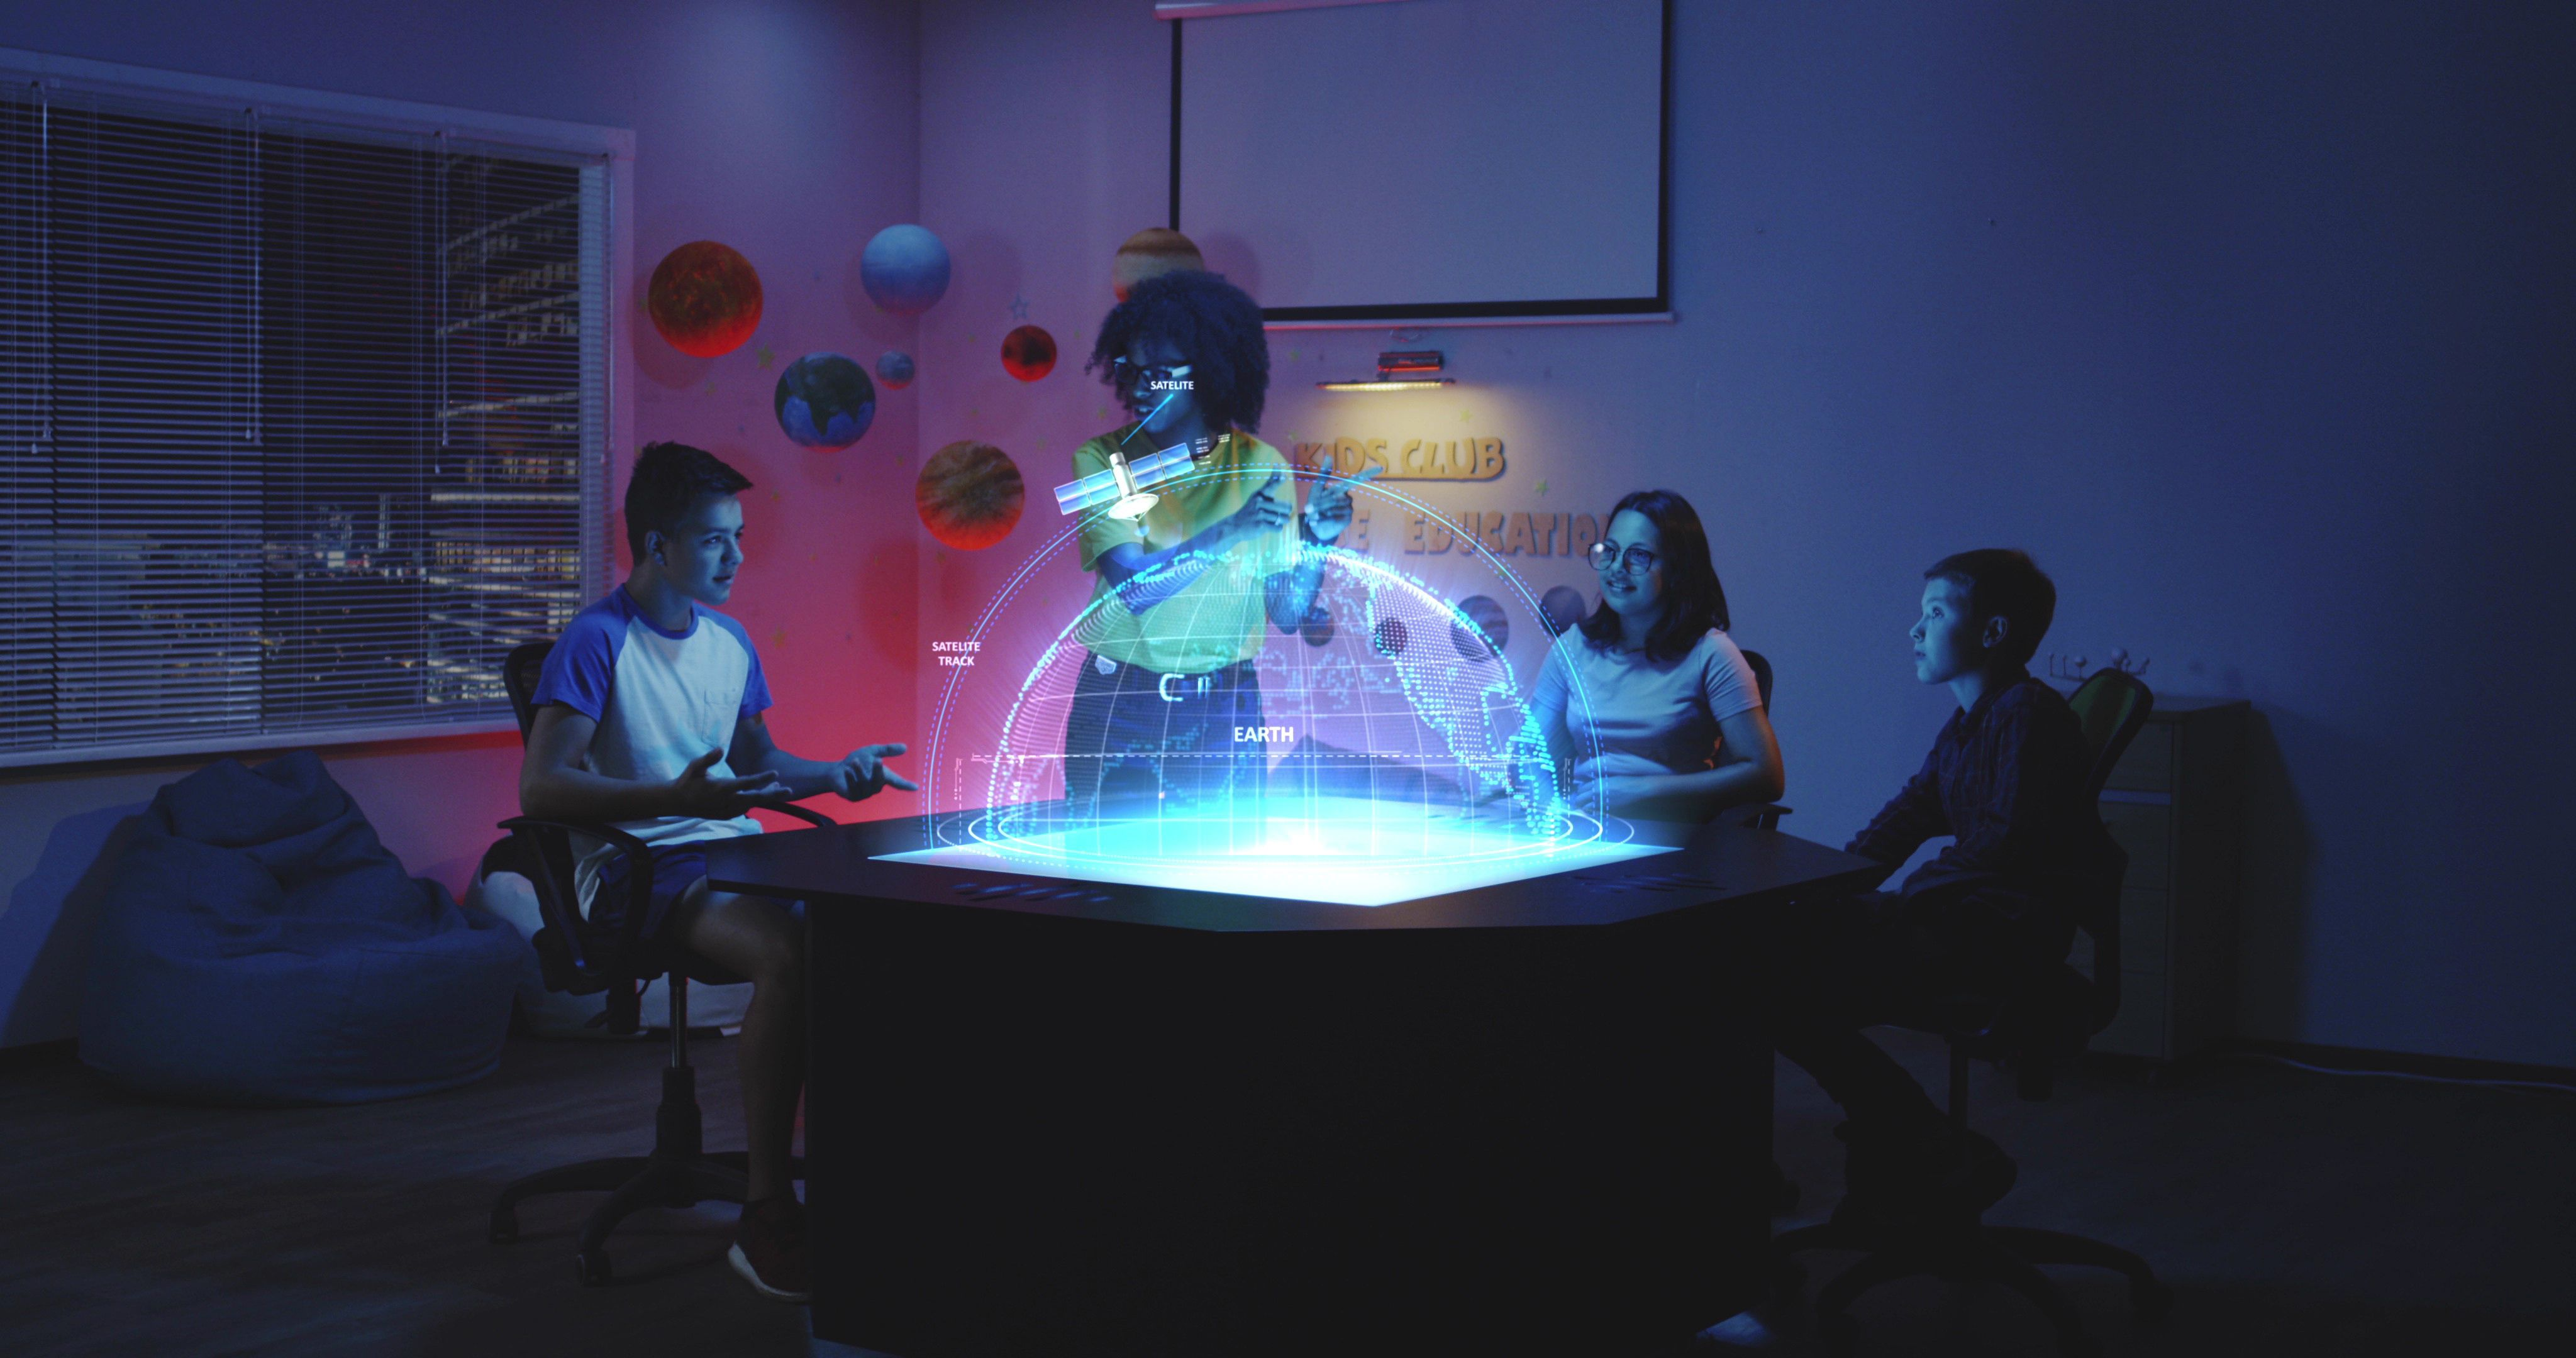 A New Way To Think About Hologram 3d Models Table Wall Hologram Hologram Technology Hologram Images